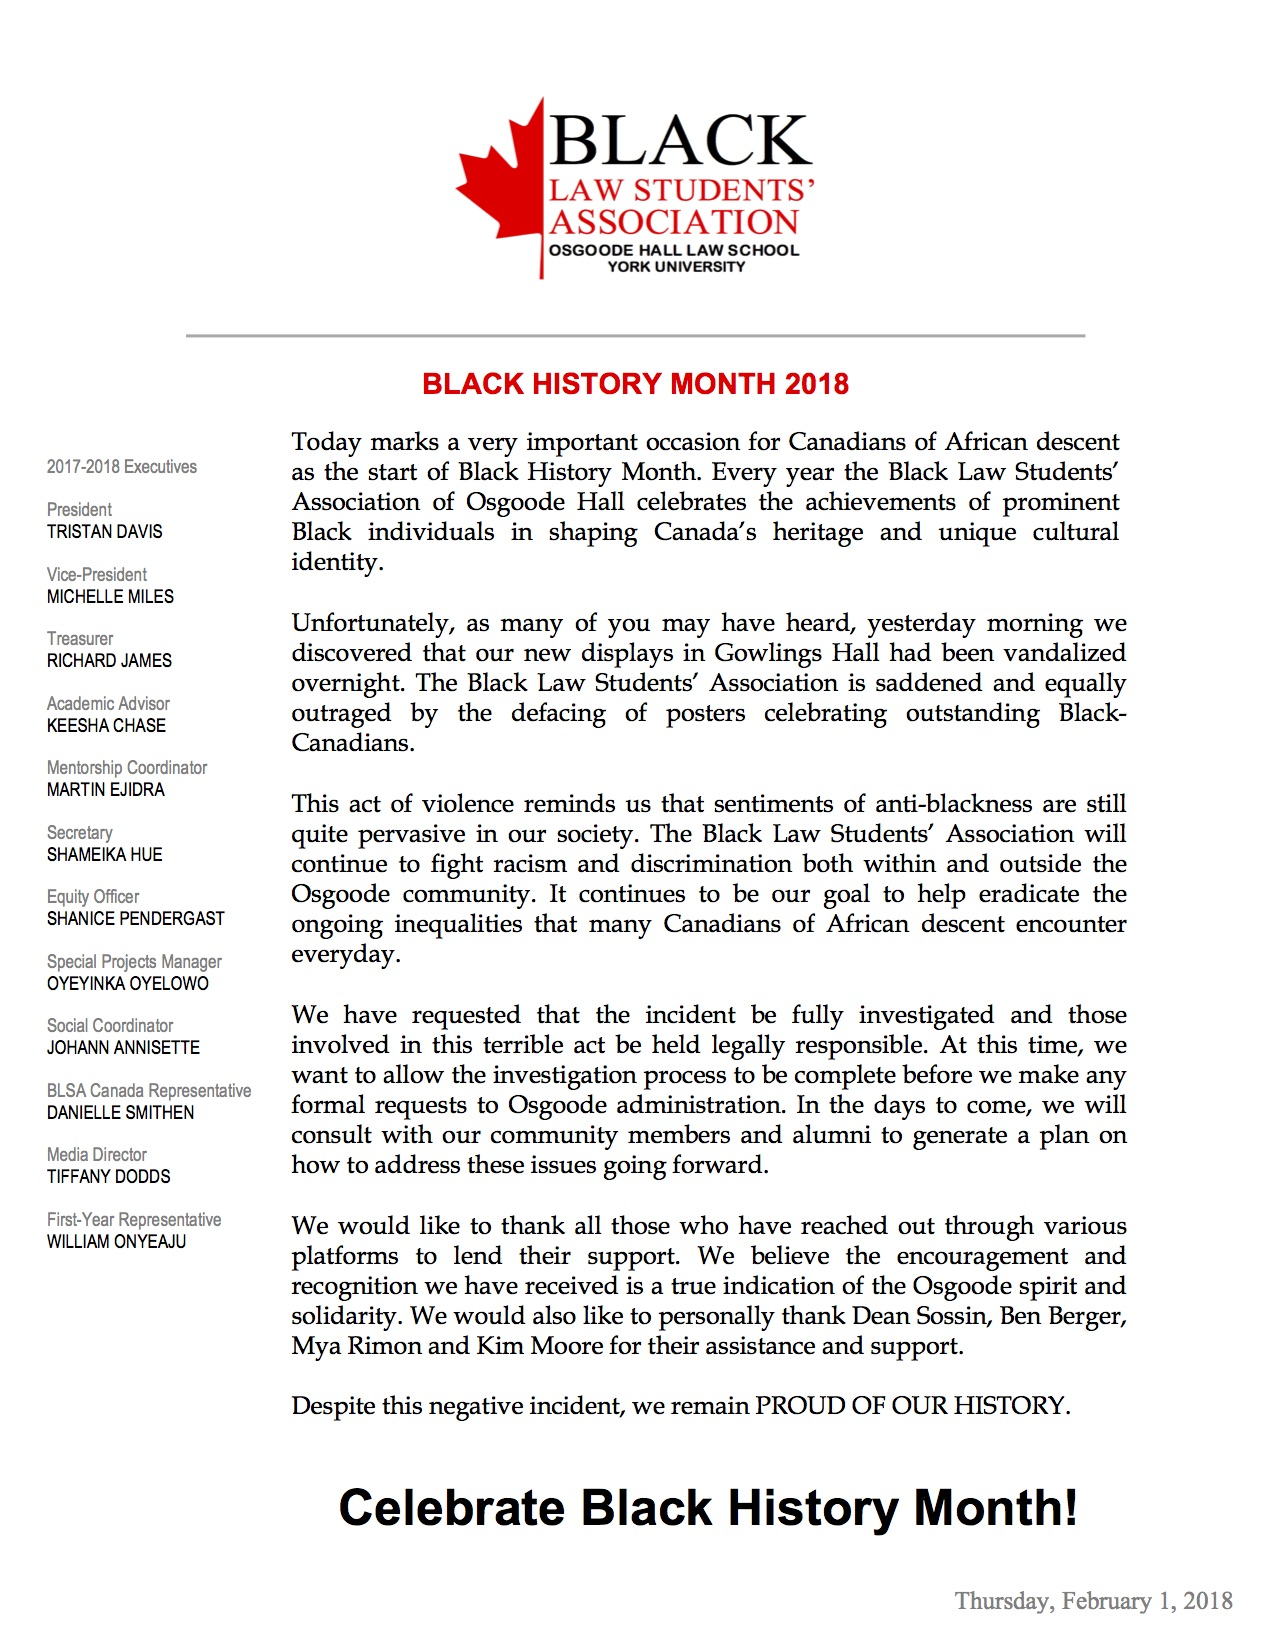 blsa_statement_bhm